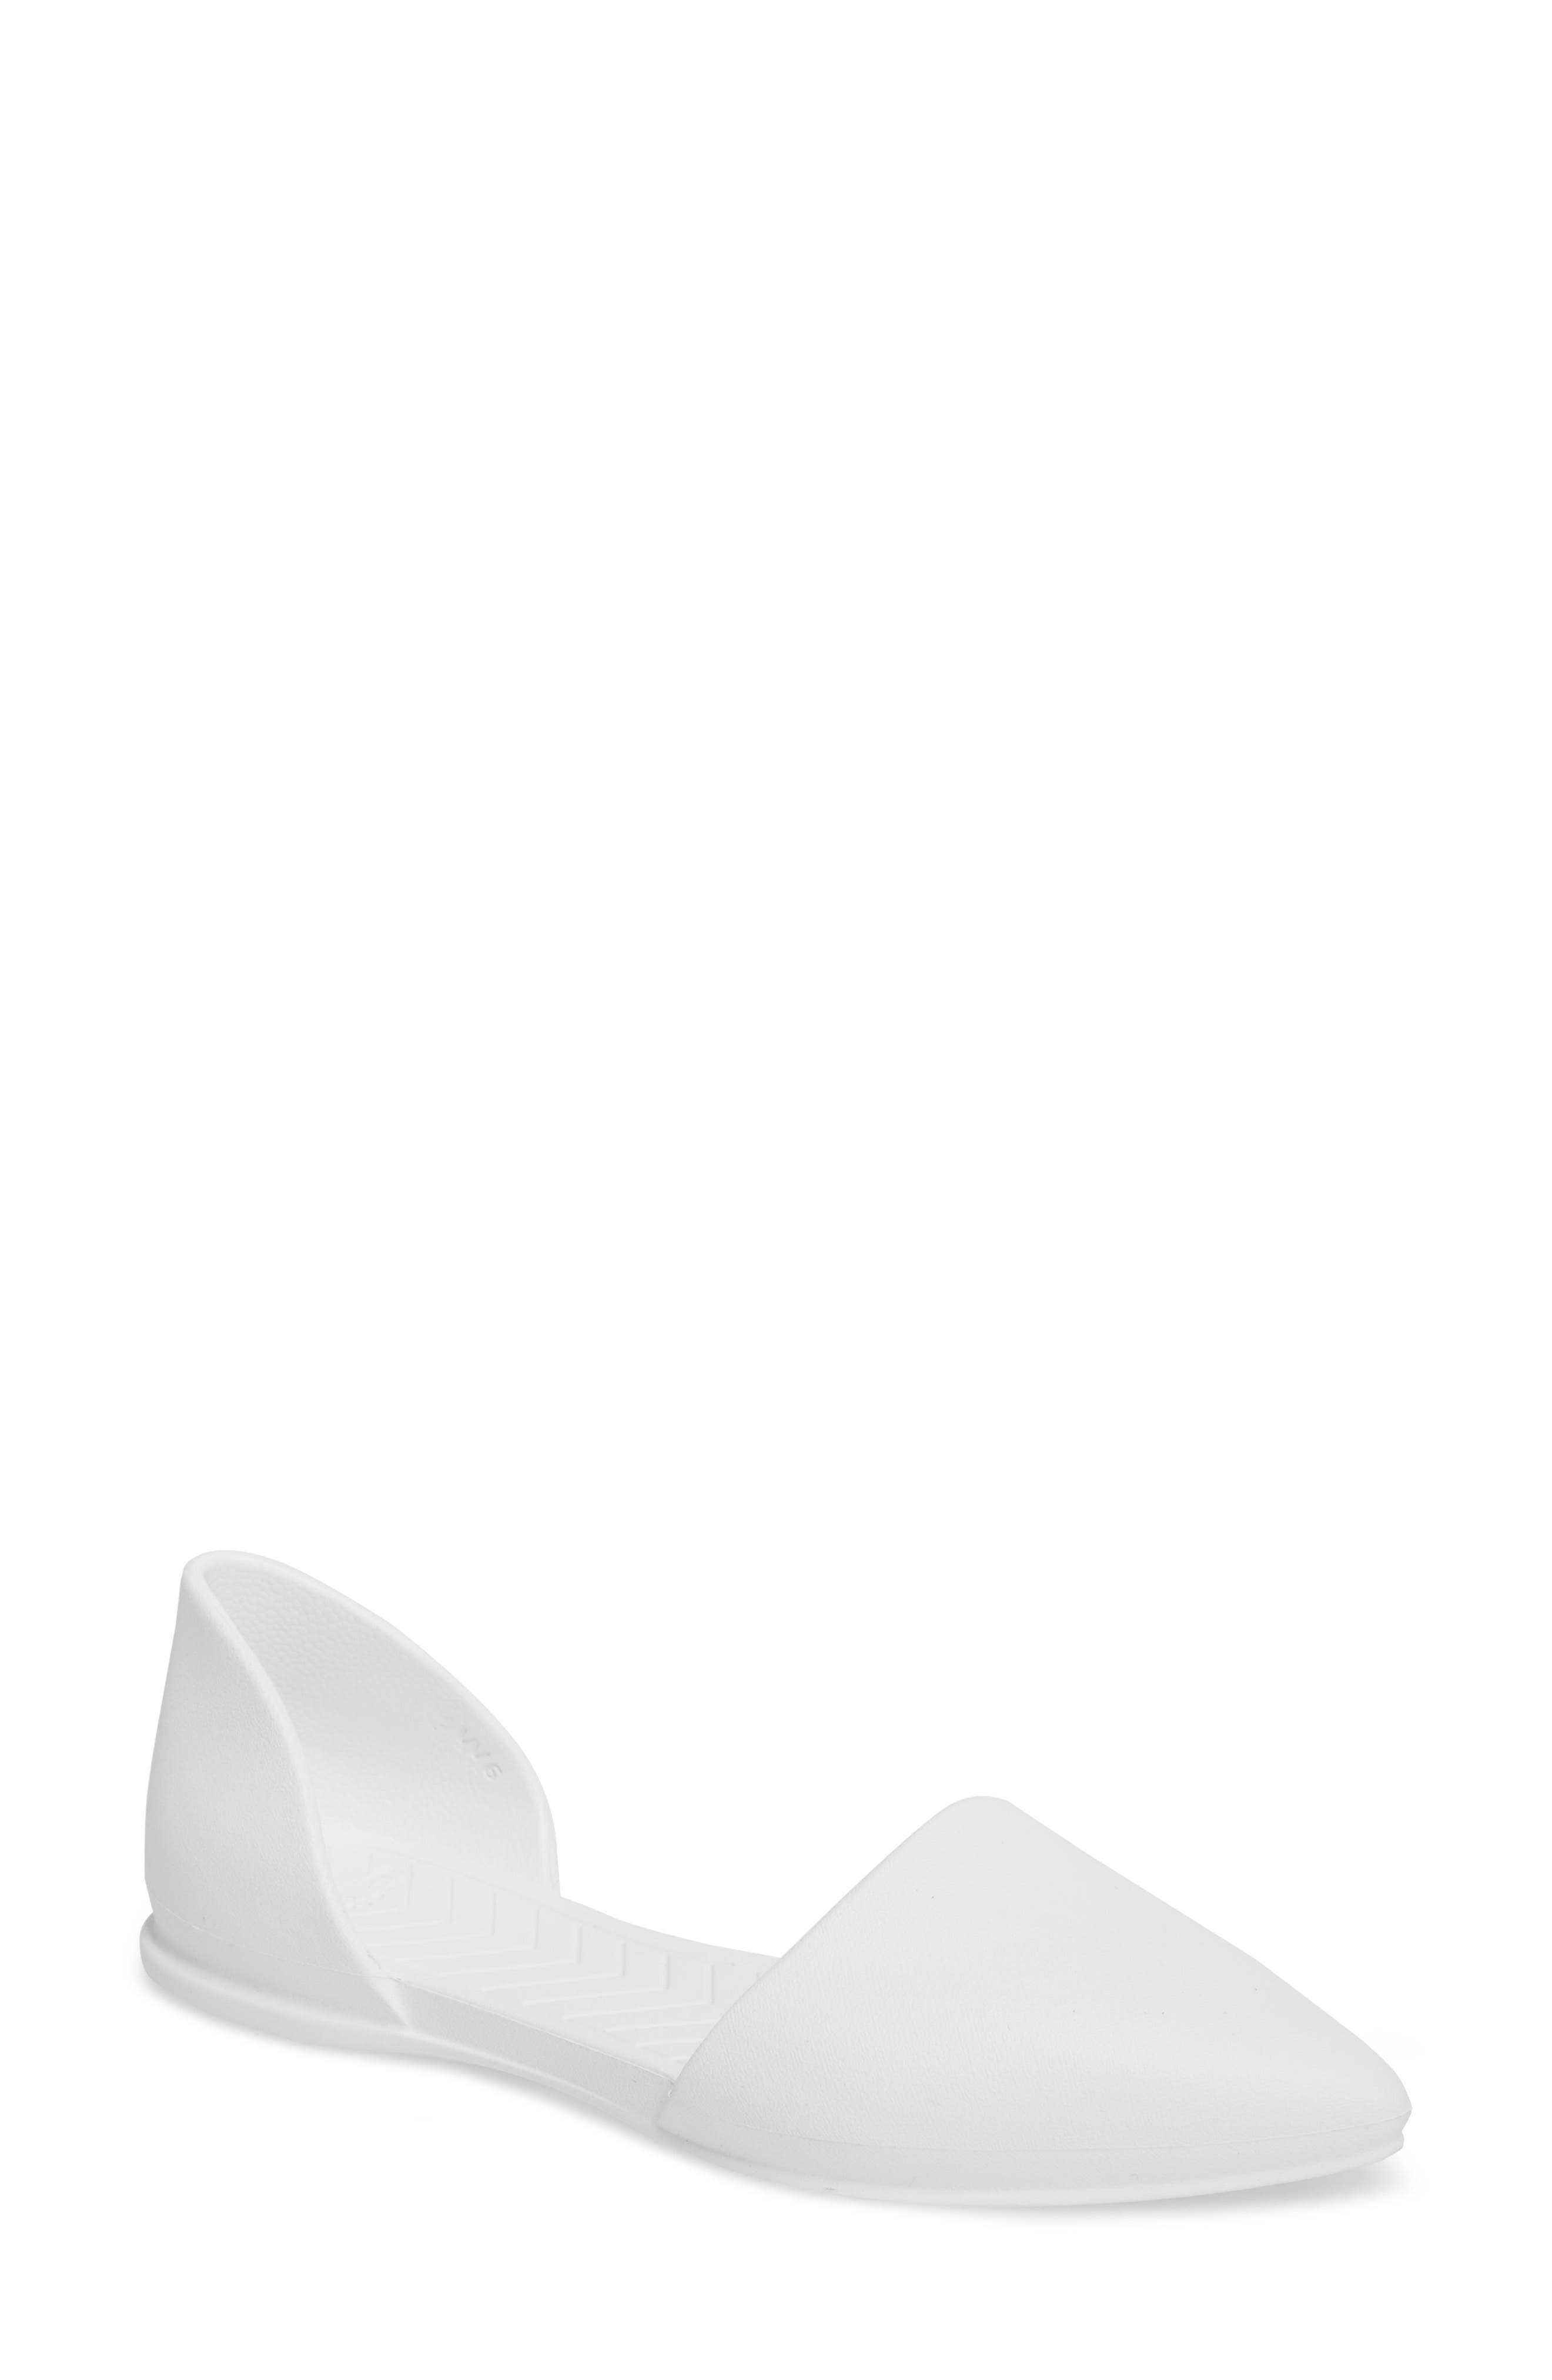 Native Shoes Audrey Vegan Open Sided Flat, White